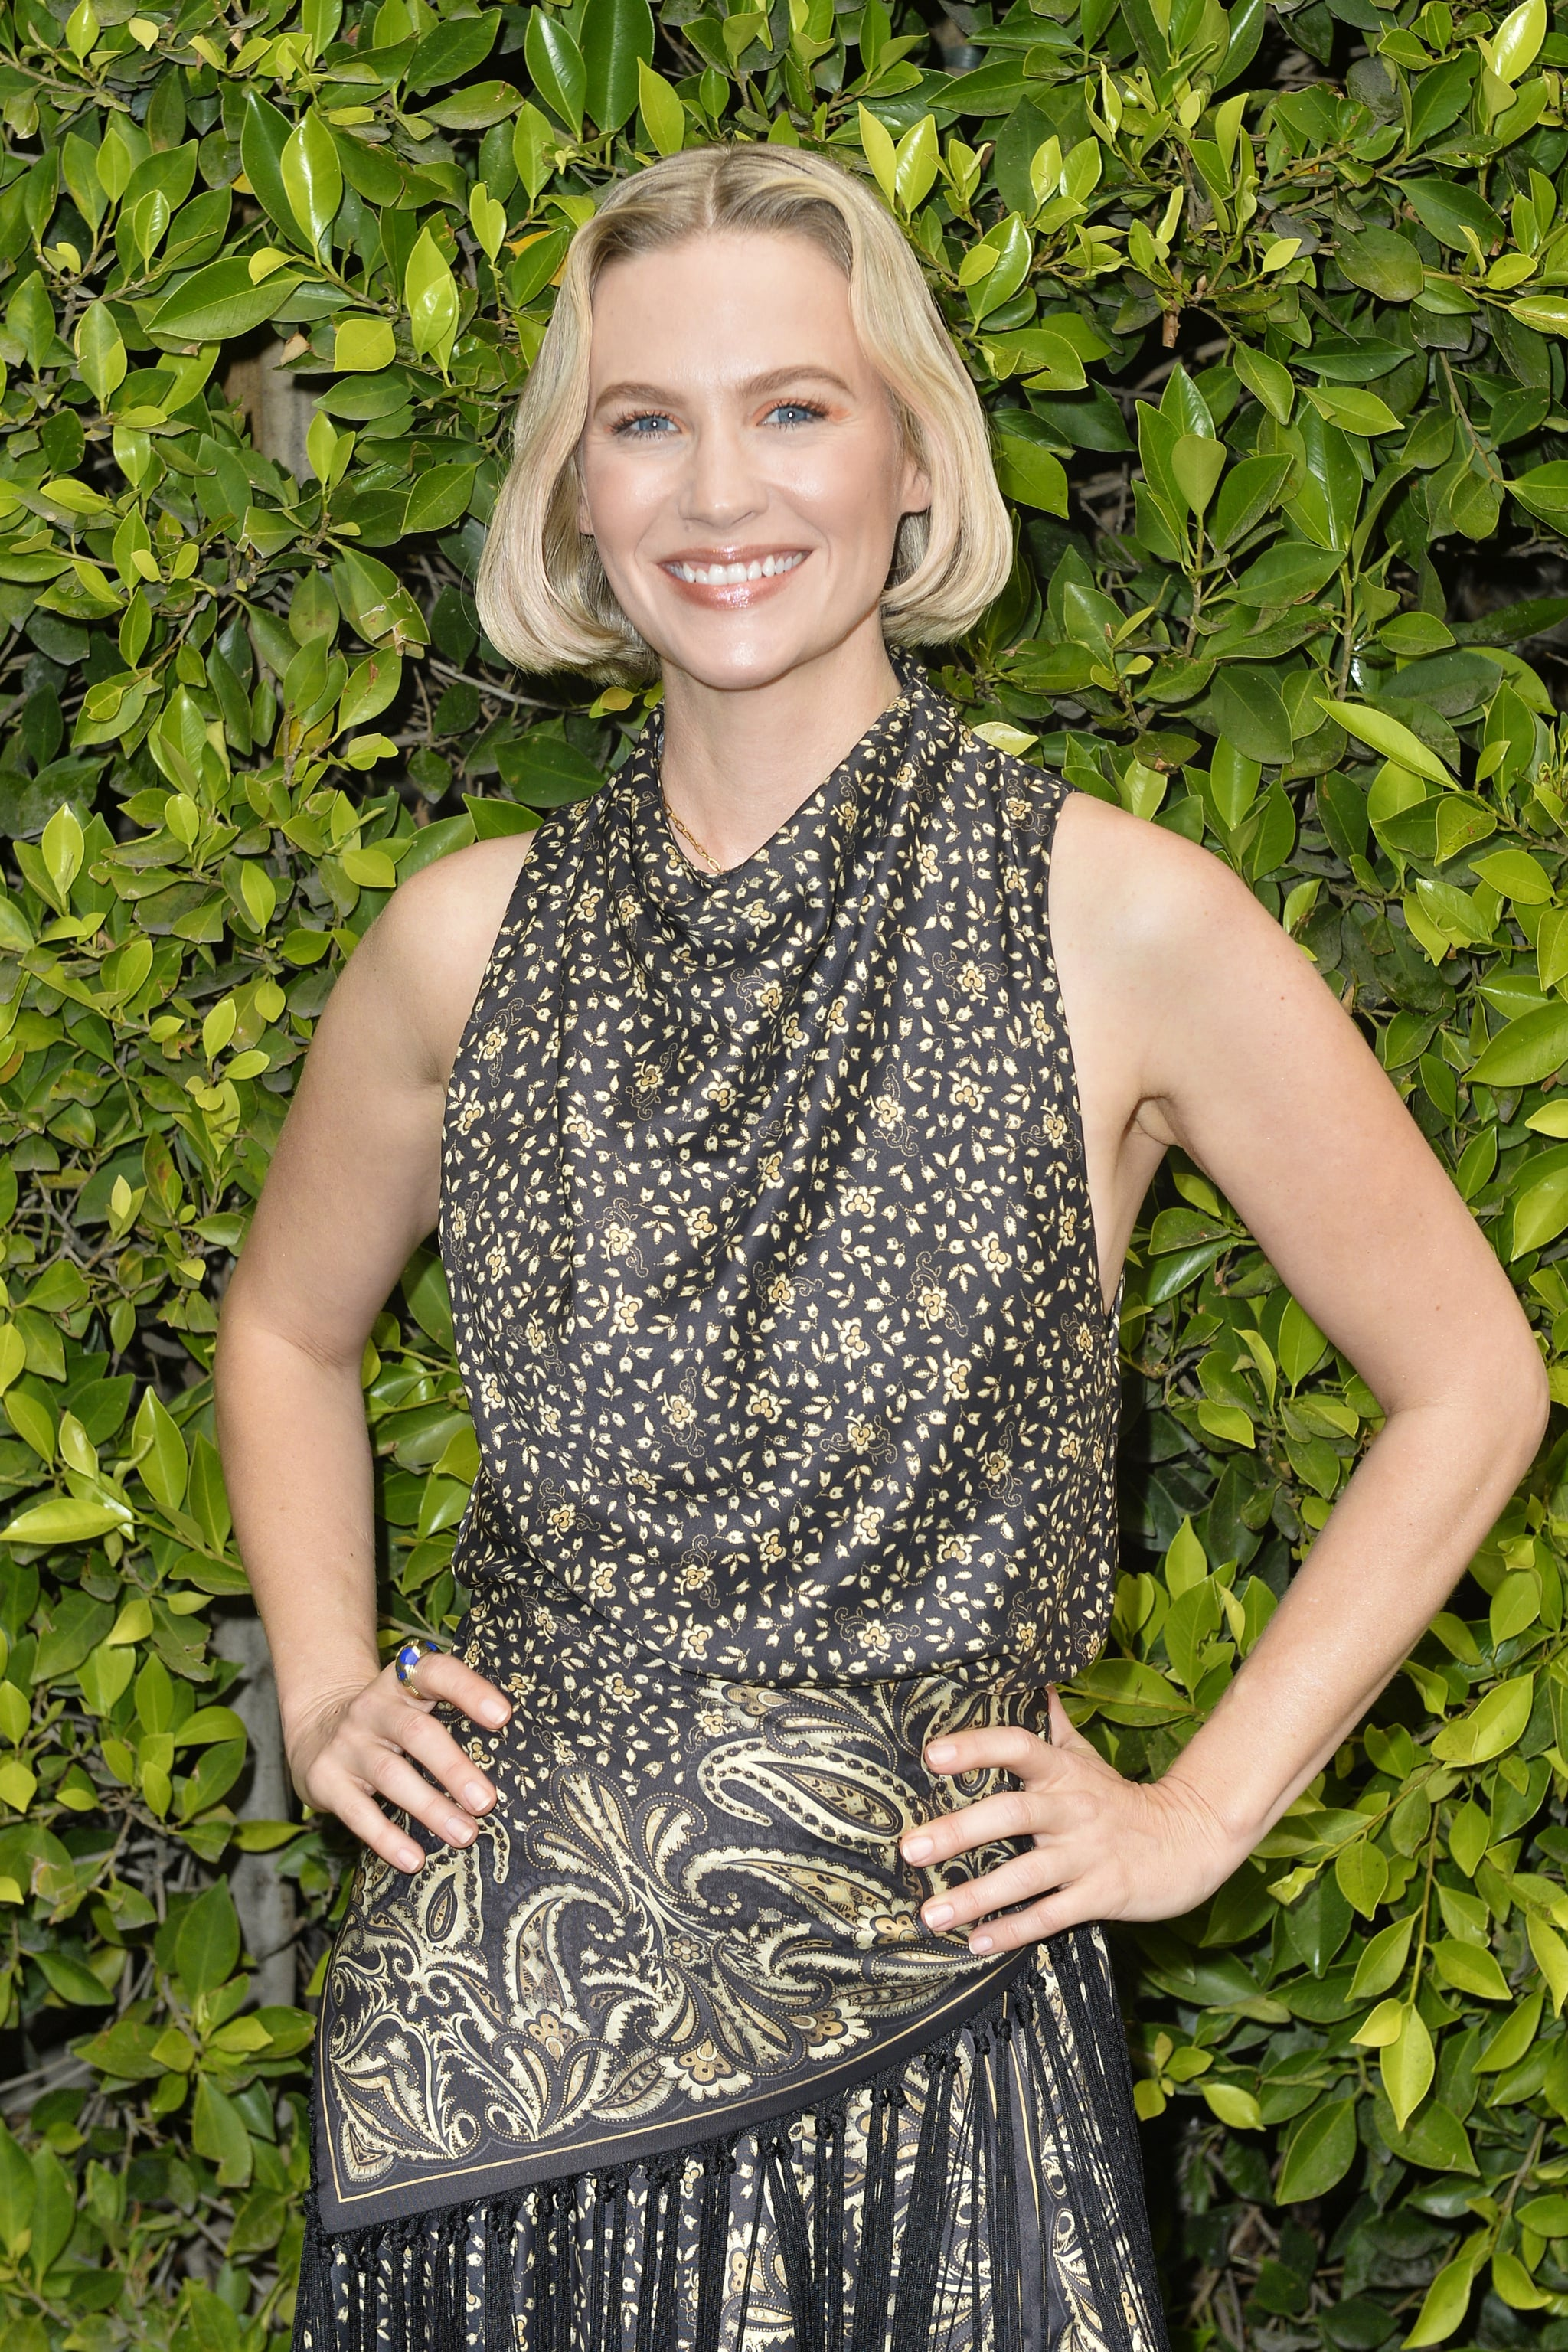 WEST HOLLYWOOD, CALIFORNIA - MARCH 10: January Jones attends Children's Hospital Los Angeles Make March Matter Fundraising Campaign at Jonathan Simkhai on March 10, 2020 in West Hollywood, California. (Photo by Jerod Harris/Getty Images)